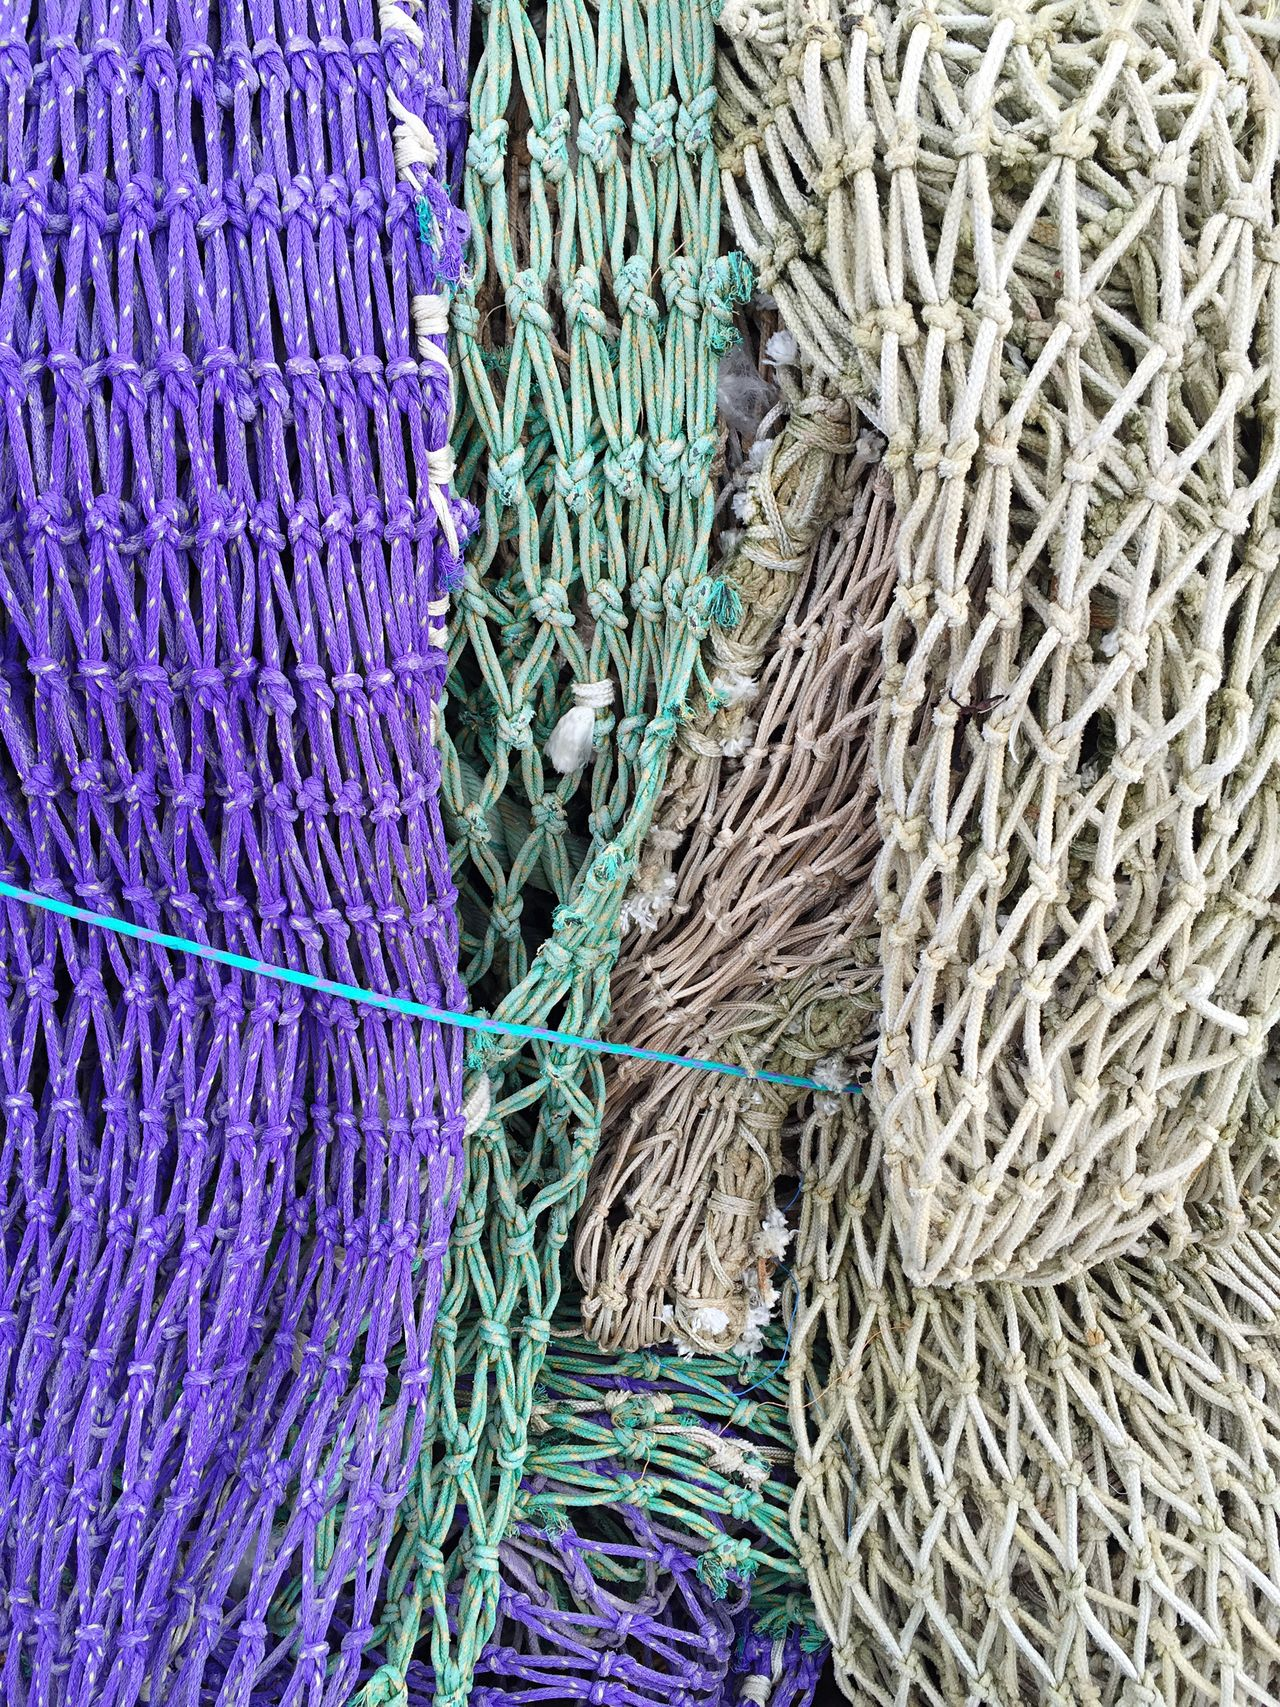 Fishnet Fishing Net Fishing Nets Net Netting Fish Structures Structure Harvest Harvest Time Sea Fisherman Fisher Violet Green Close-up Fishing